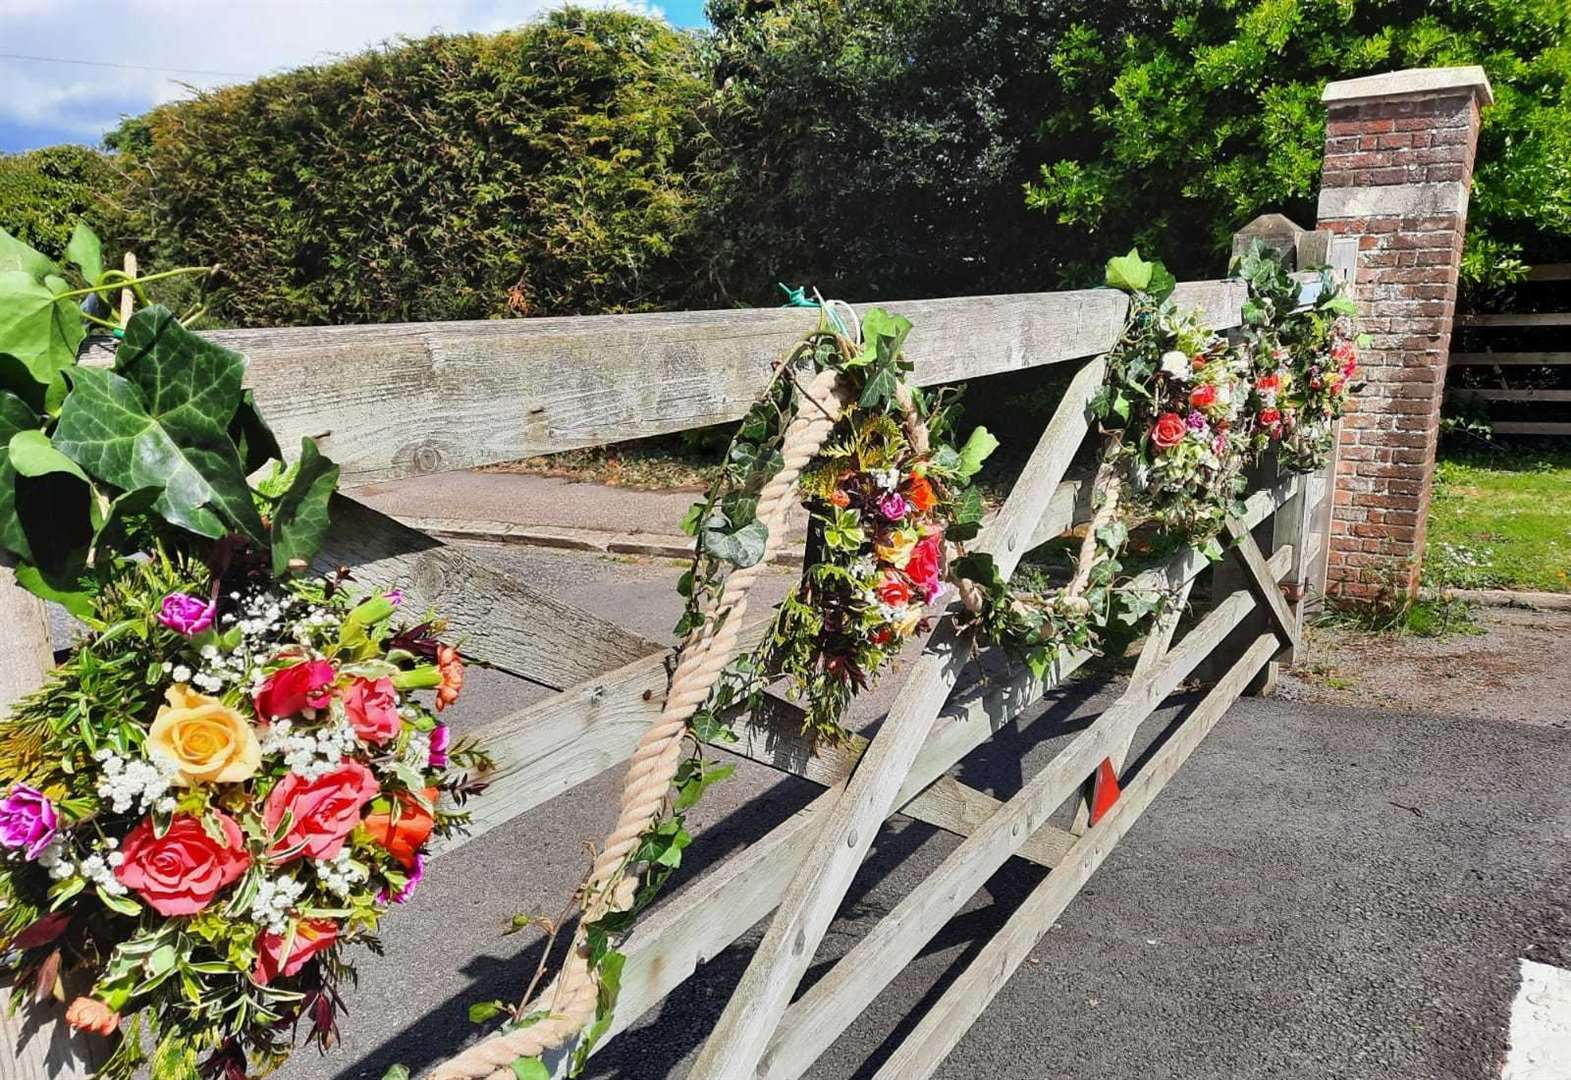 Flower displays put out in 'message of hope'